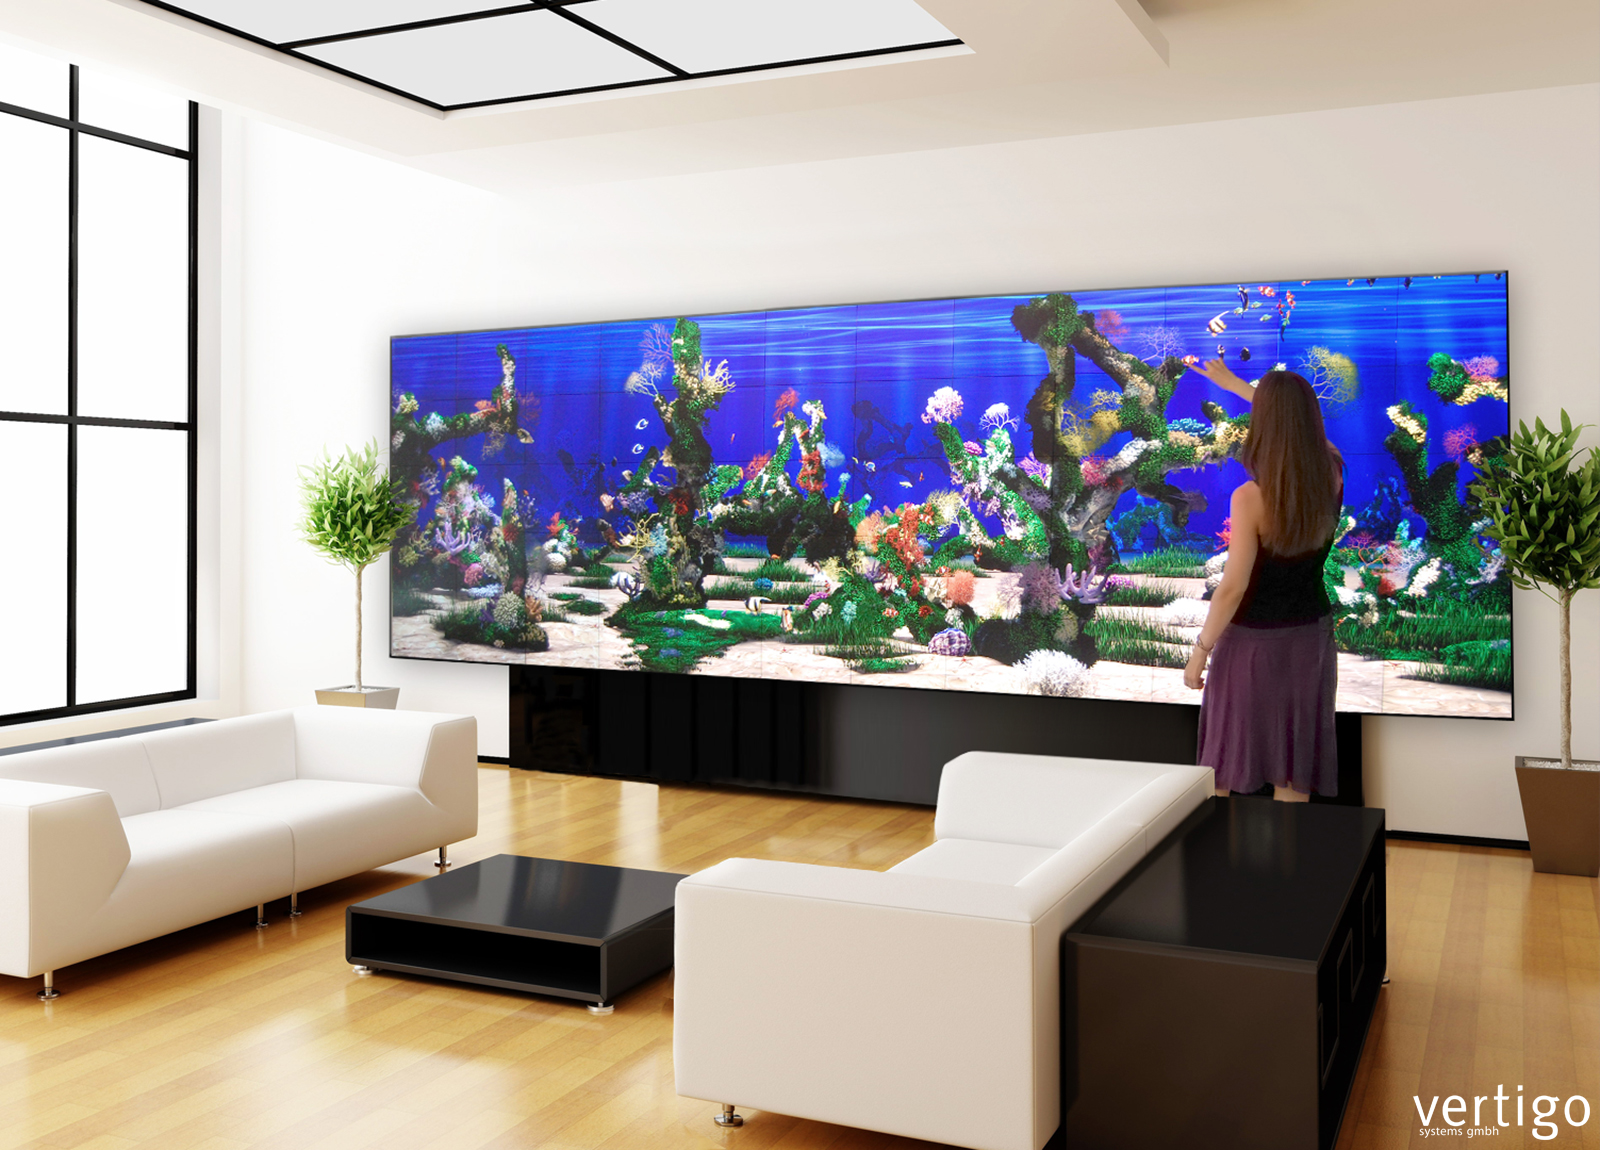 living wall interactive projected walls and videowalls vertigo systems gmbh. Black Bedroom Furniture Sets. Home Design Ideas